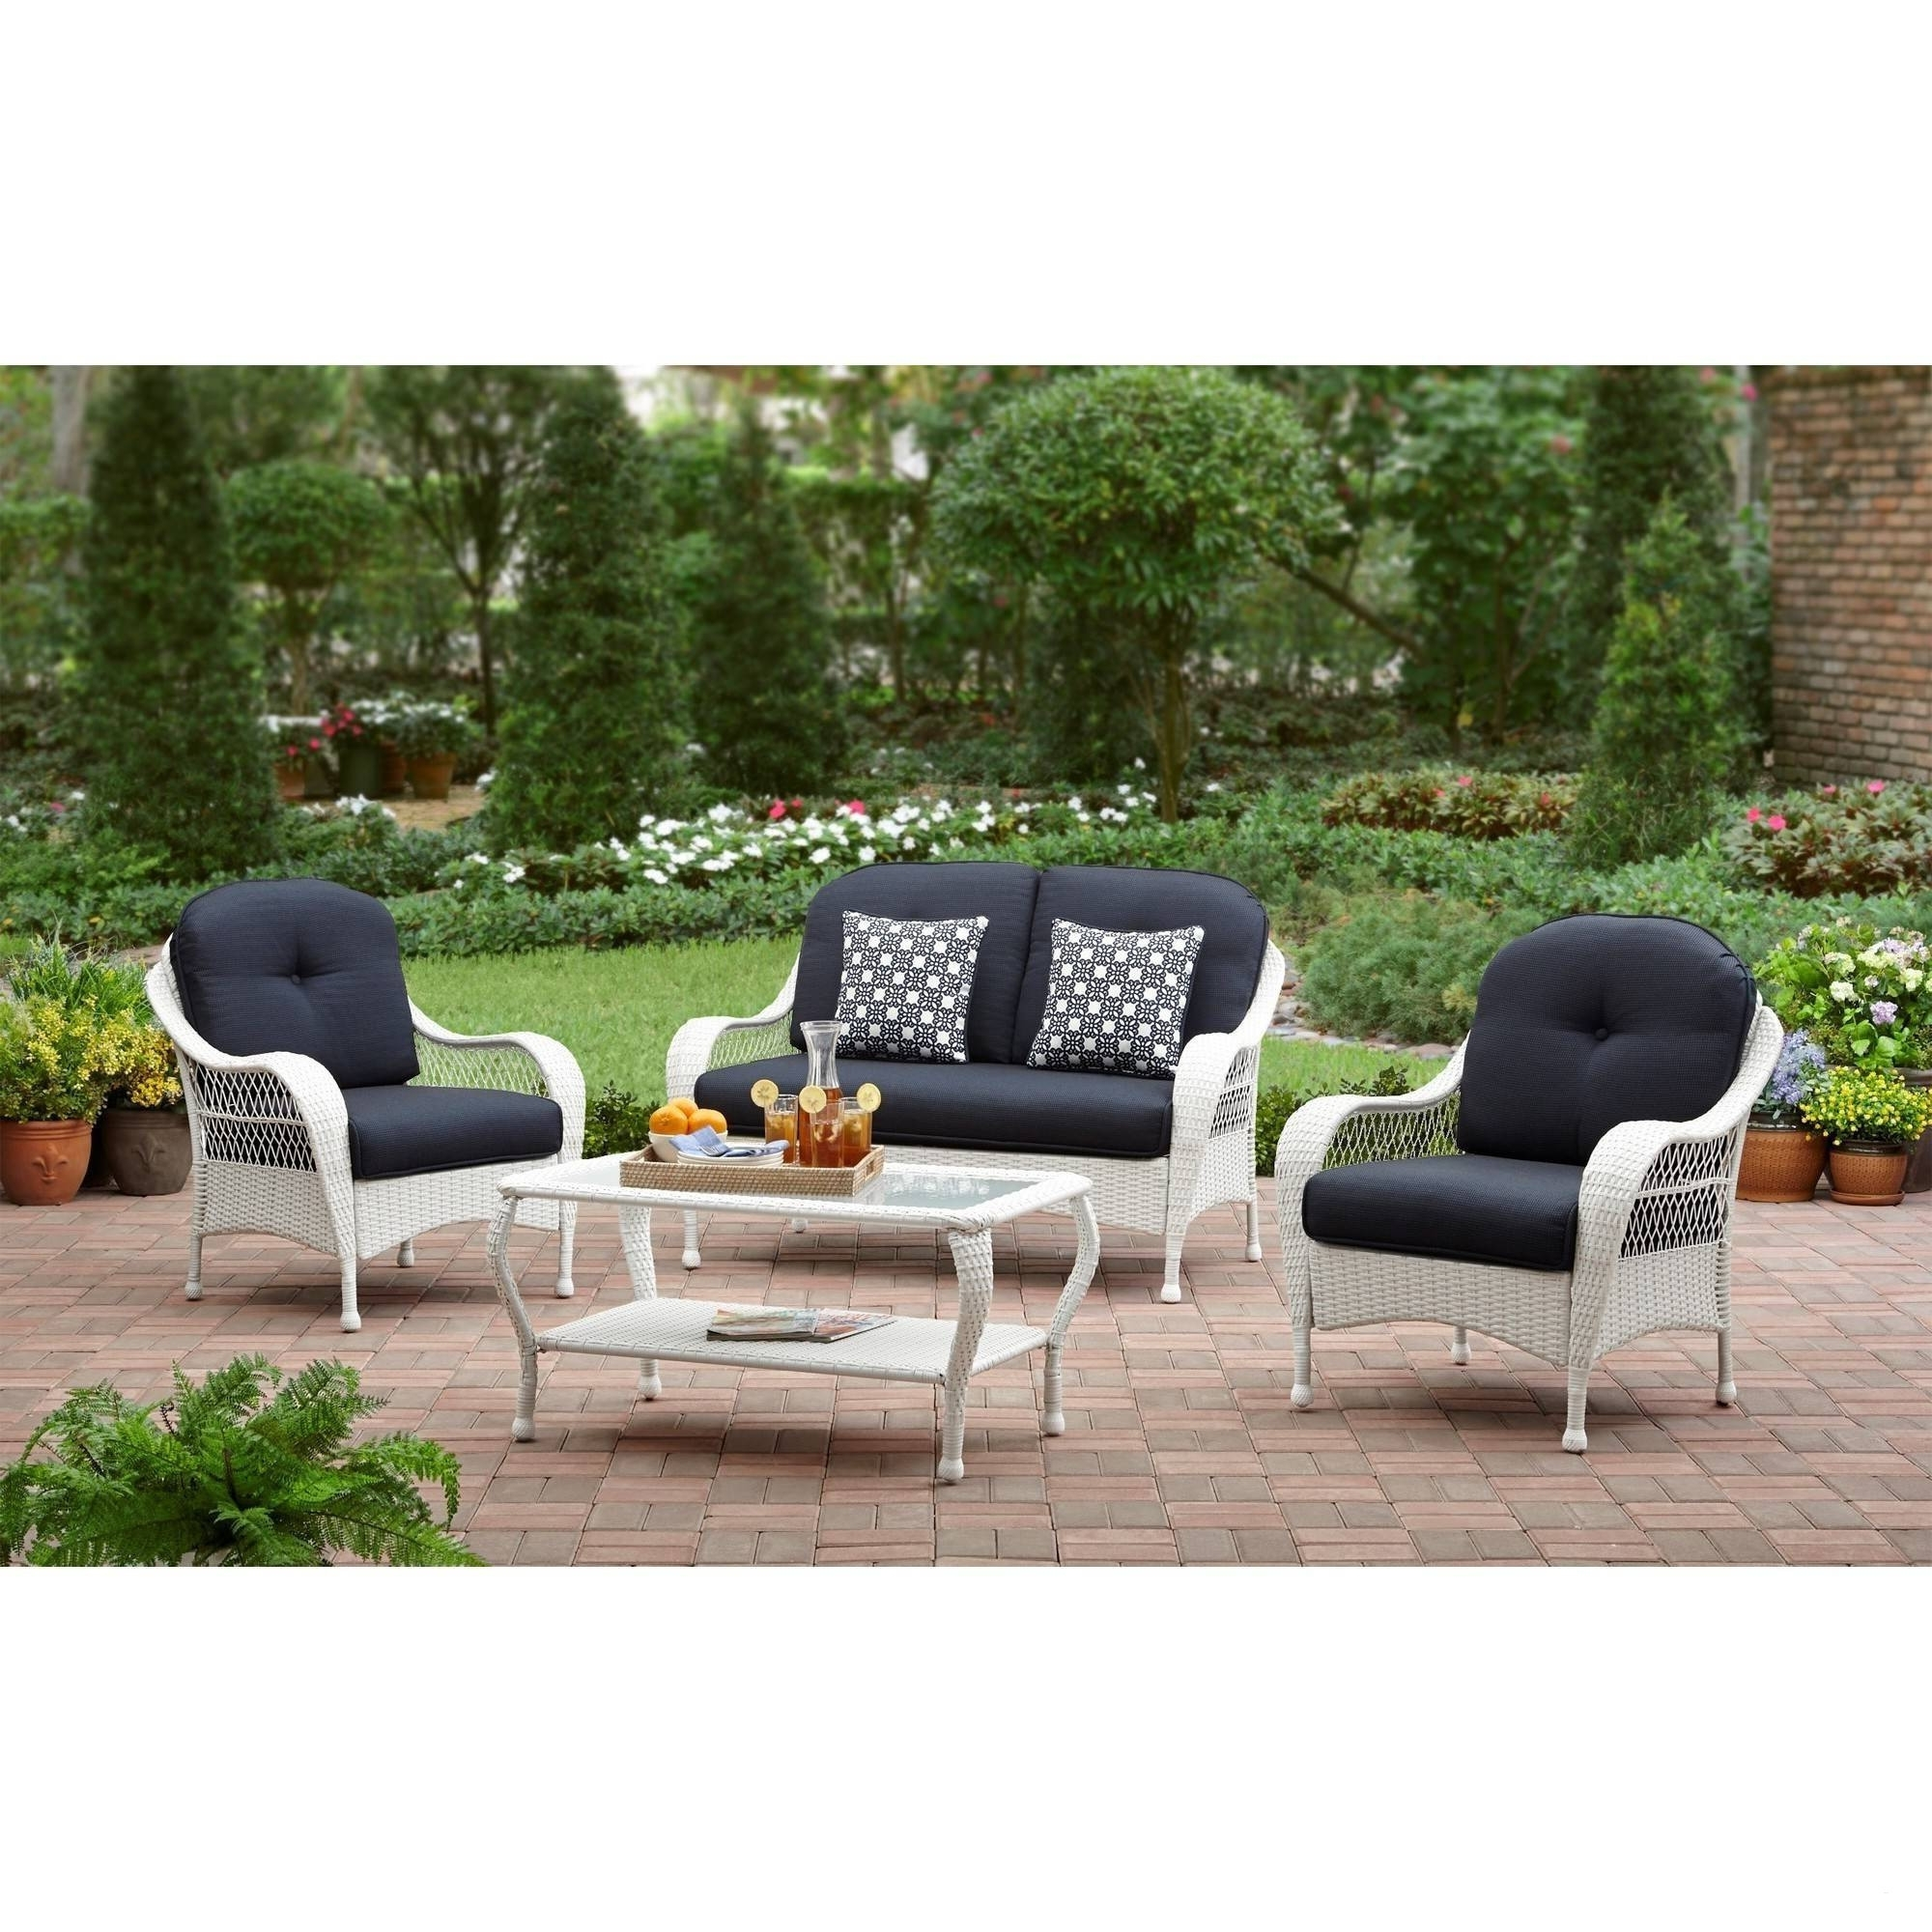 Popular Delightful Conversation Sets Patio Furniture Clearance 18 Attractive Pertaining To Target Patio Furniture Conversation Sets (View 9 of 20)